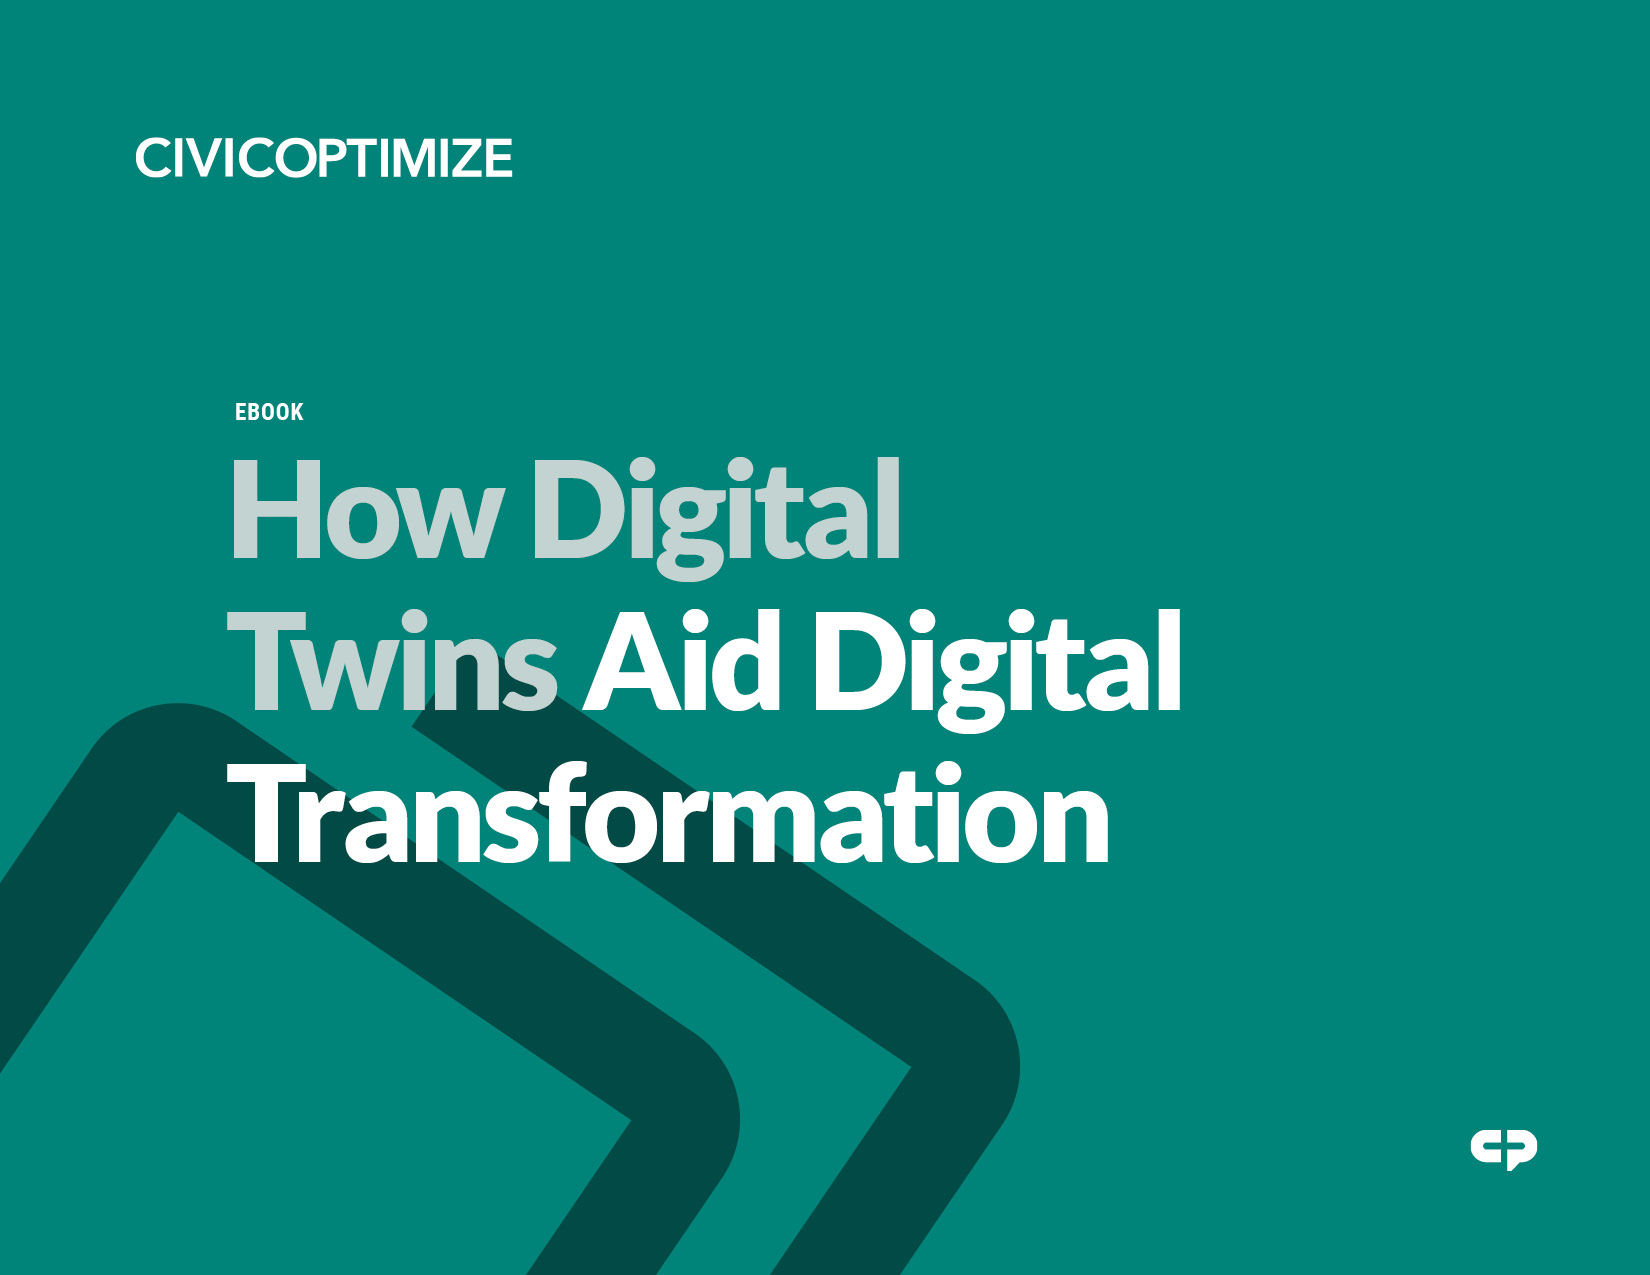 CivicOptimize Digital Transformation eBook